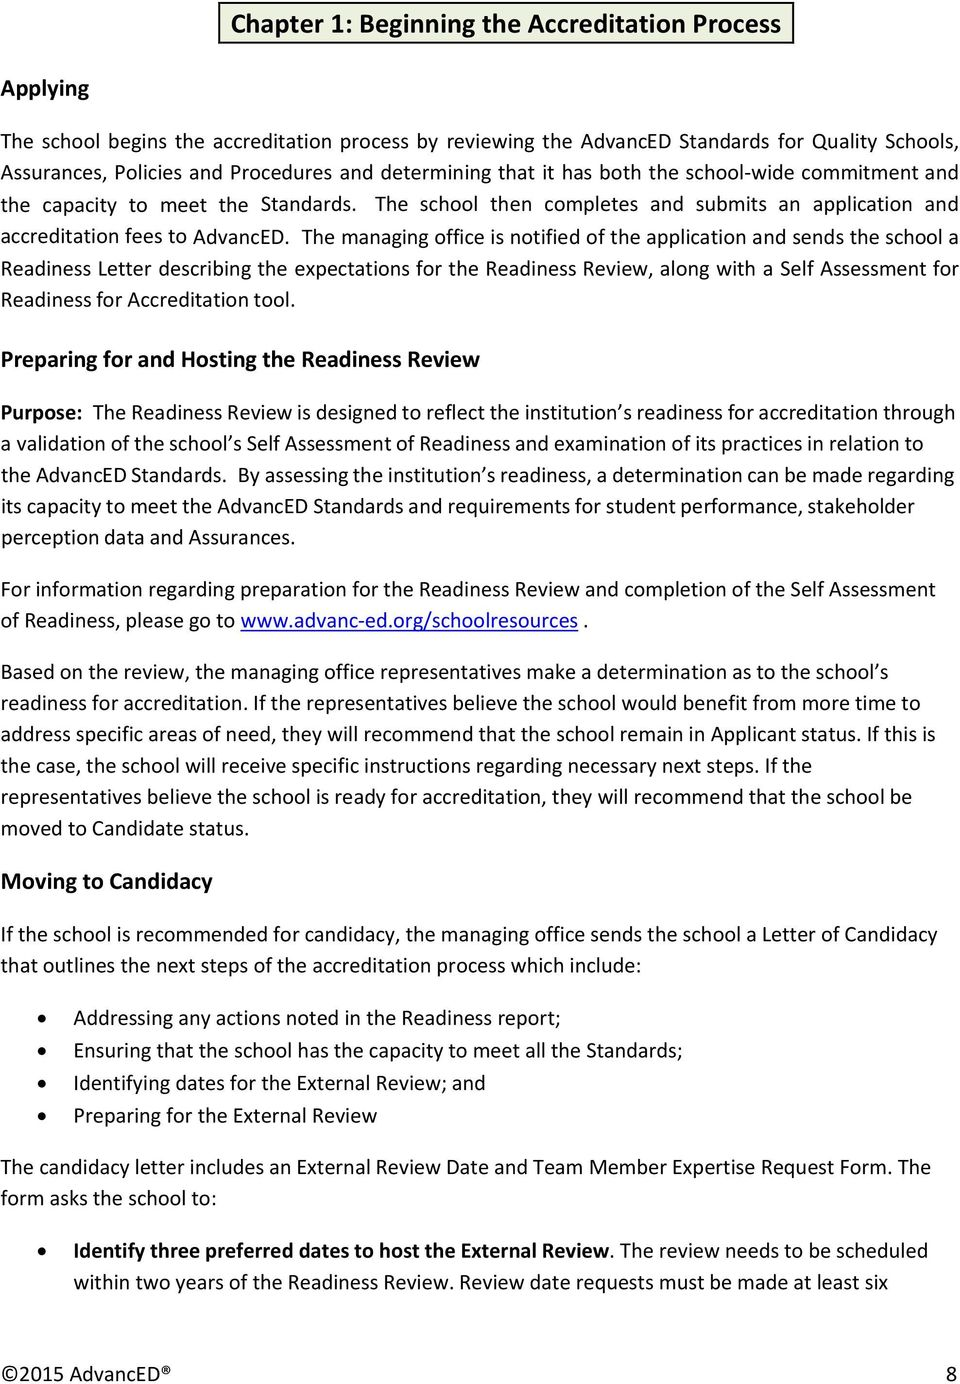 The managing office is notified of the application and sends the school a Readiness Letter describing the expectations for the Readiness Review, along with a Self Assessment for Readiness for